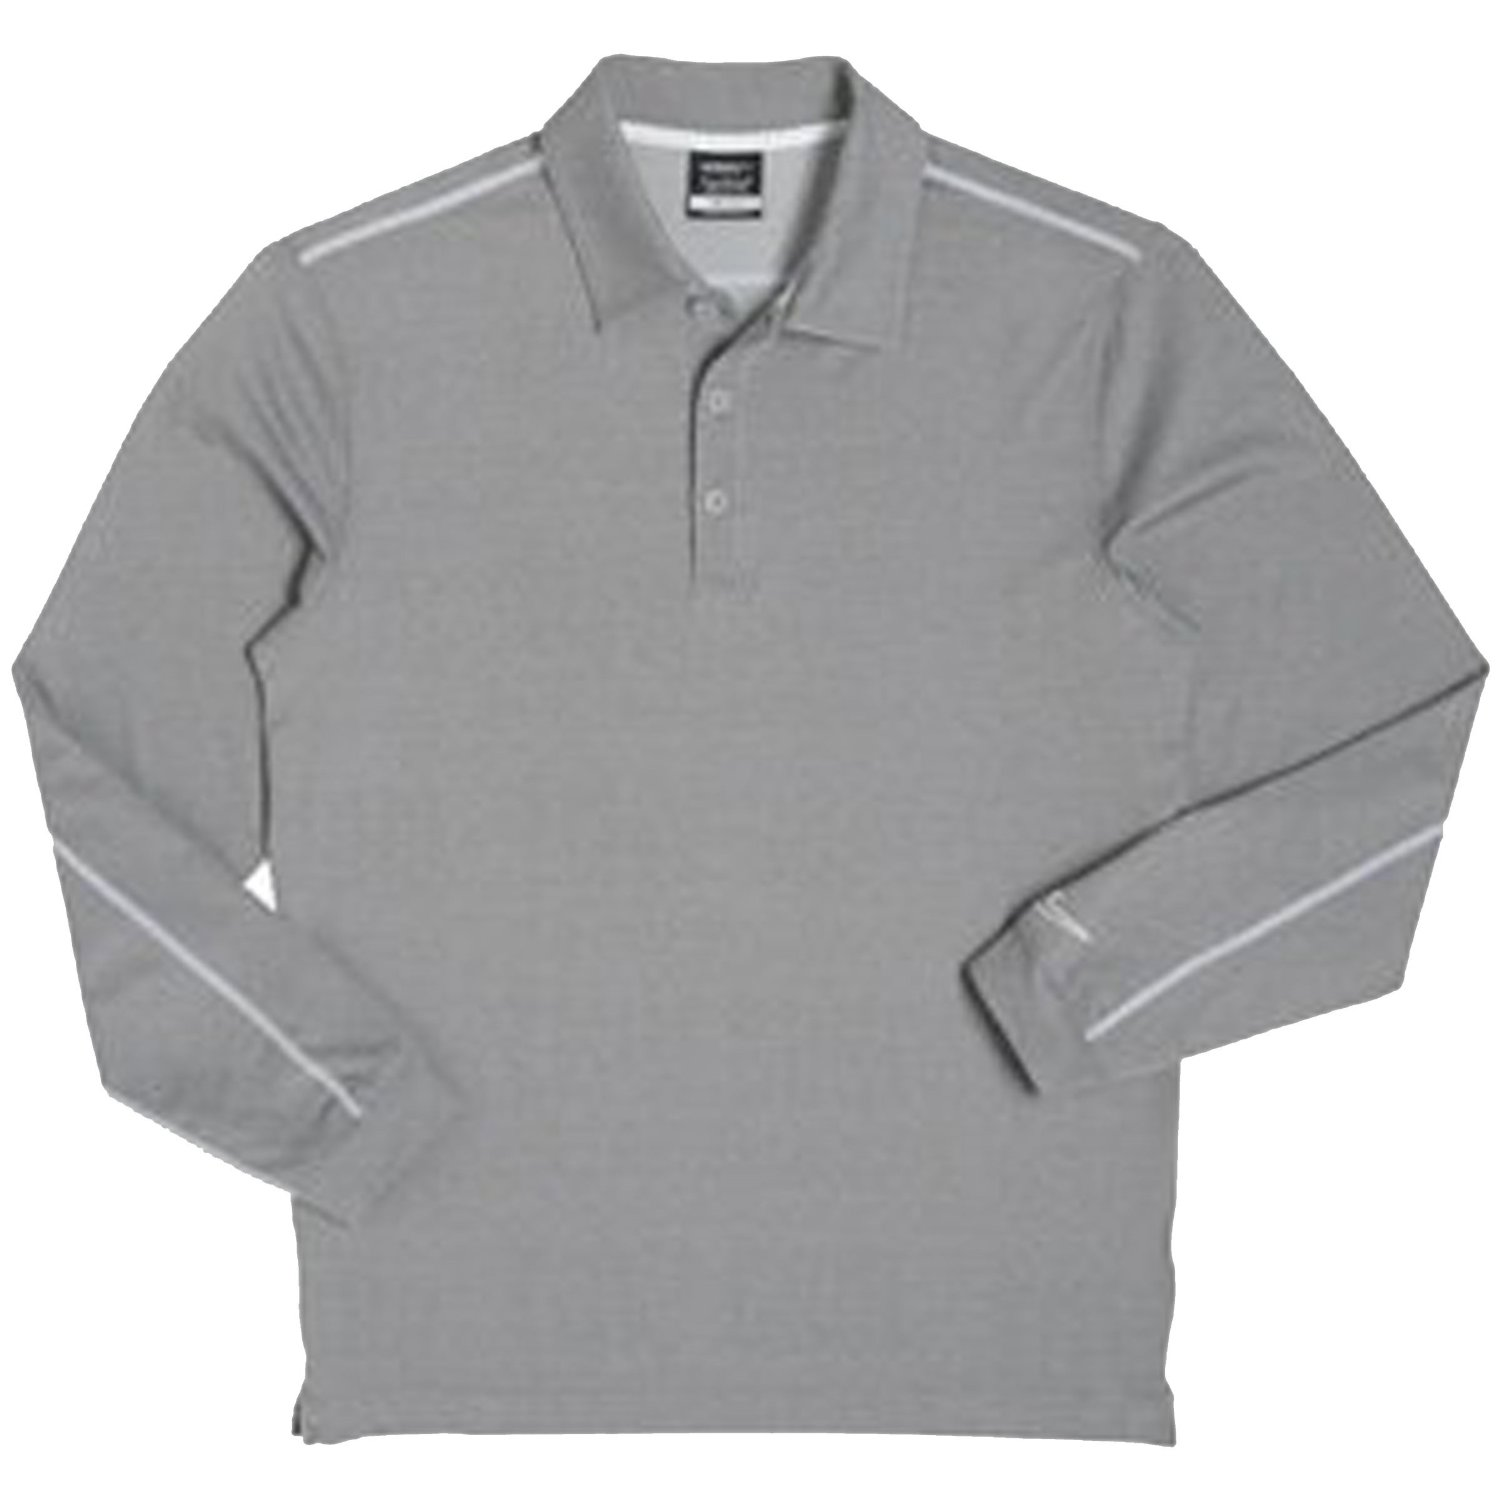 34cb25cbd Get Quotations · Nike Men's Dri-Fit Long Sleeve Heathered Bleached Golf Polo  Shirt - Small